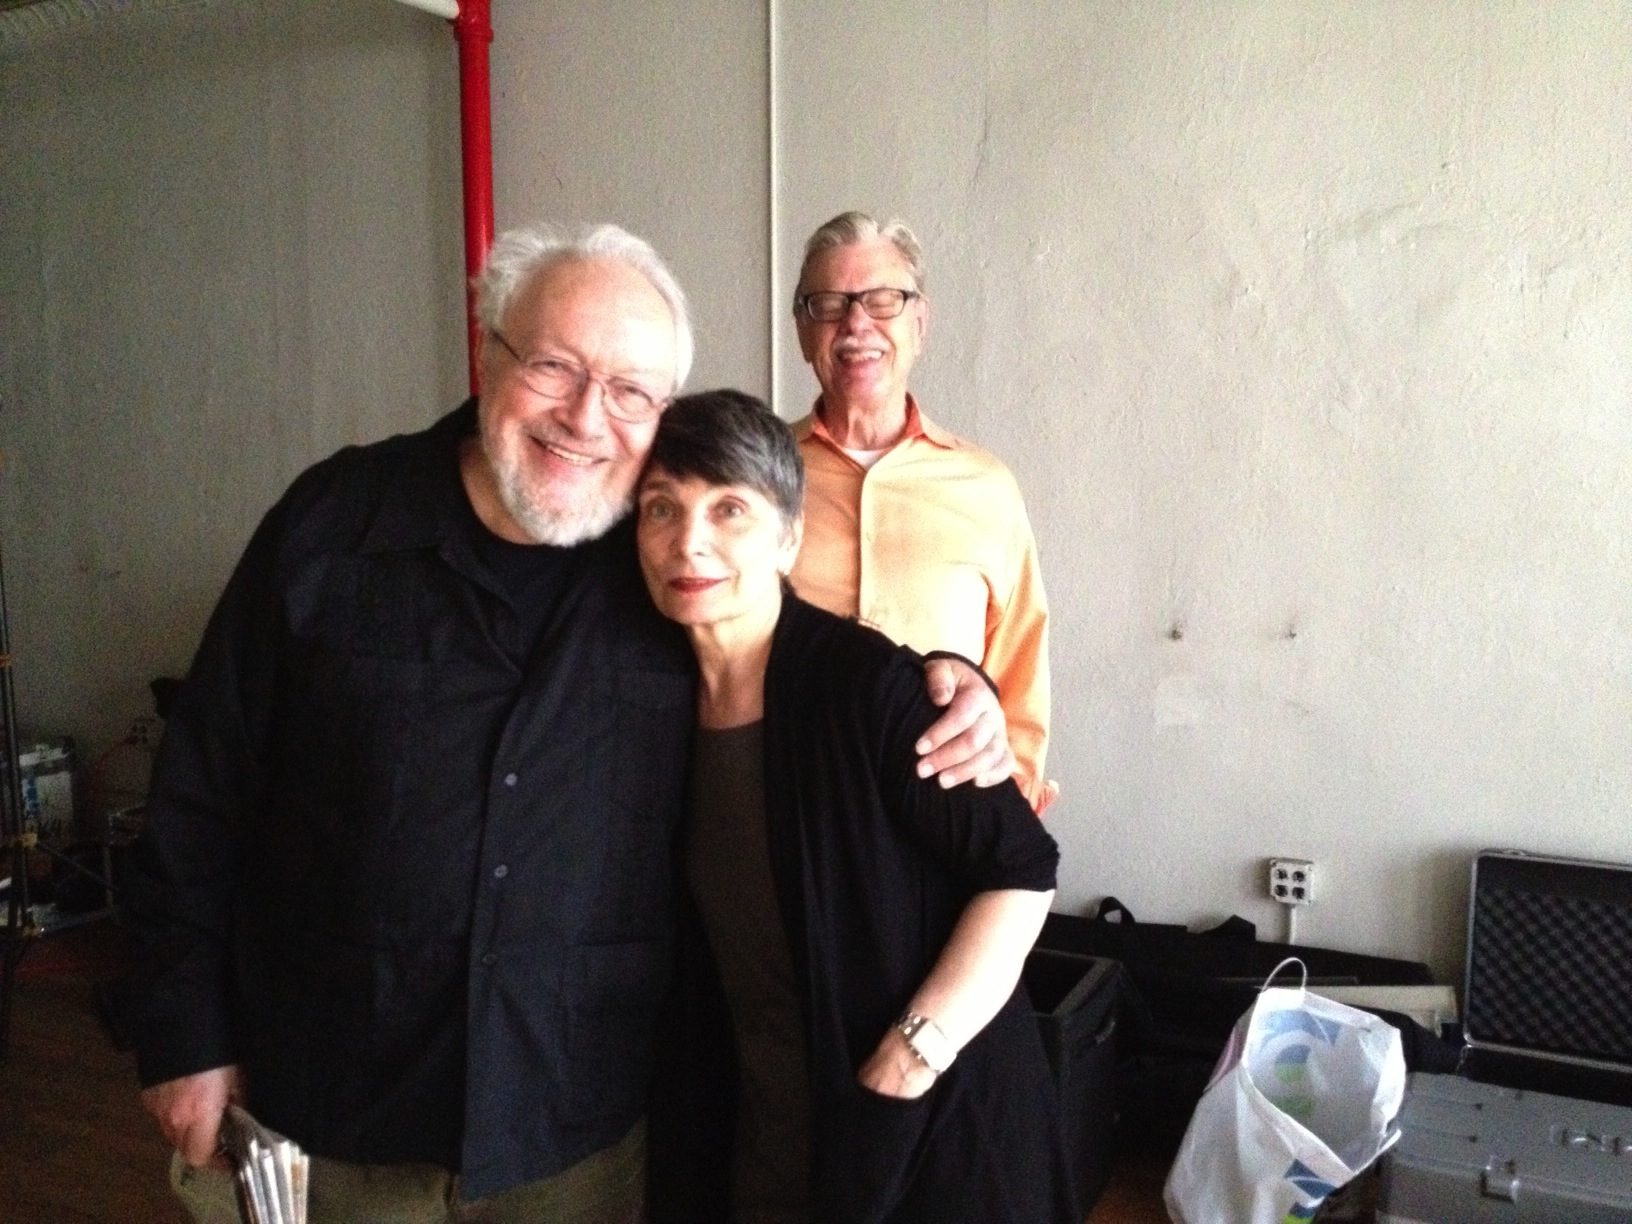 Harold with Sara Fishko and Cal Skaggs during the filming of The Jazz Loft According to W. Eugene Smith, 2013 © Judith Thompson